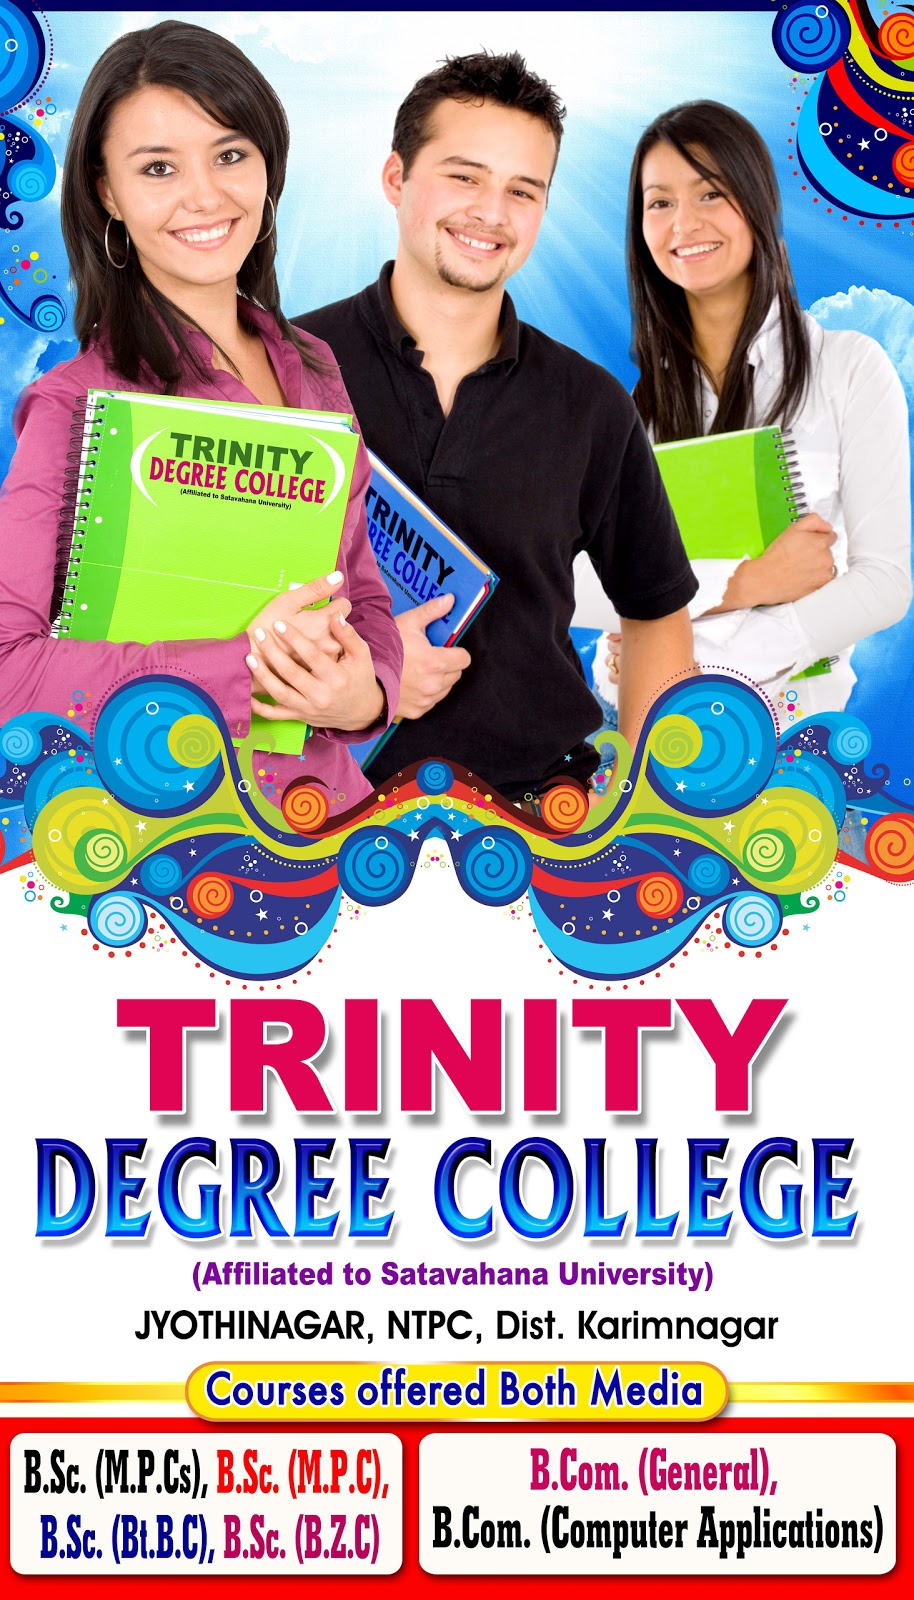 Trinity college banner template design free - SRIHITHA ADS